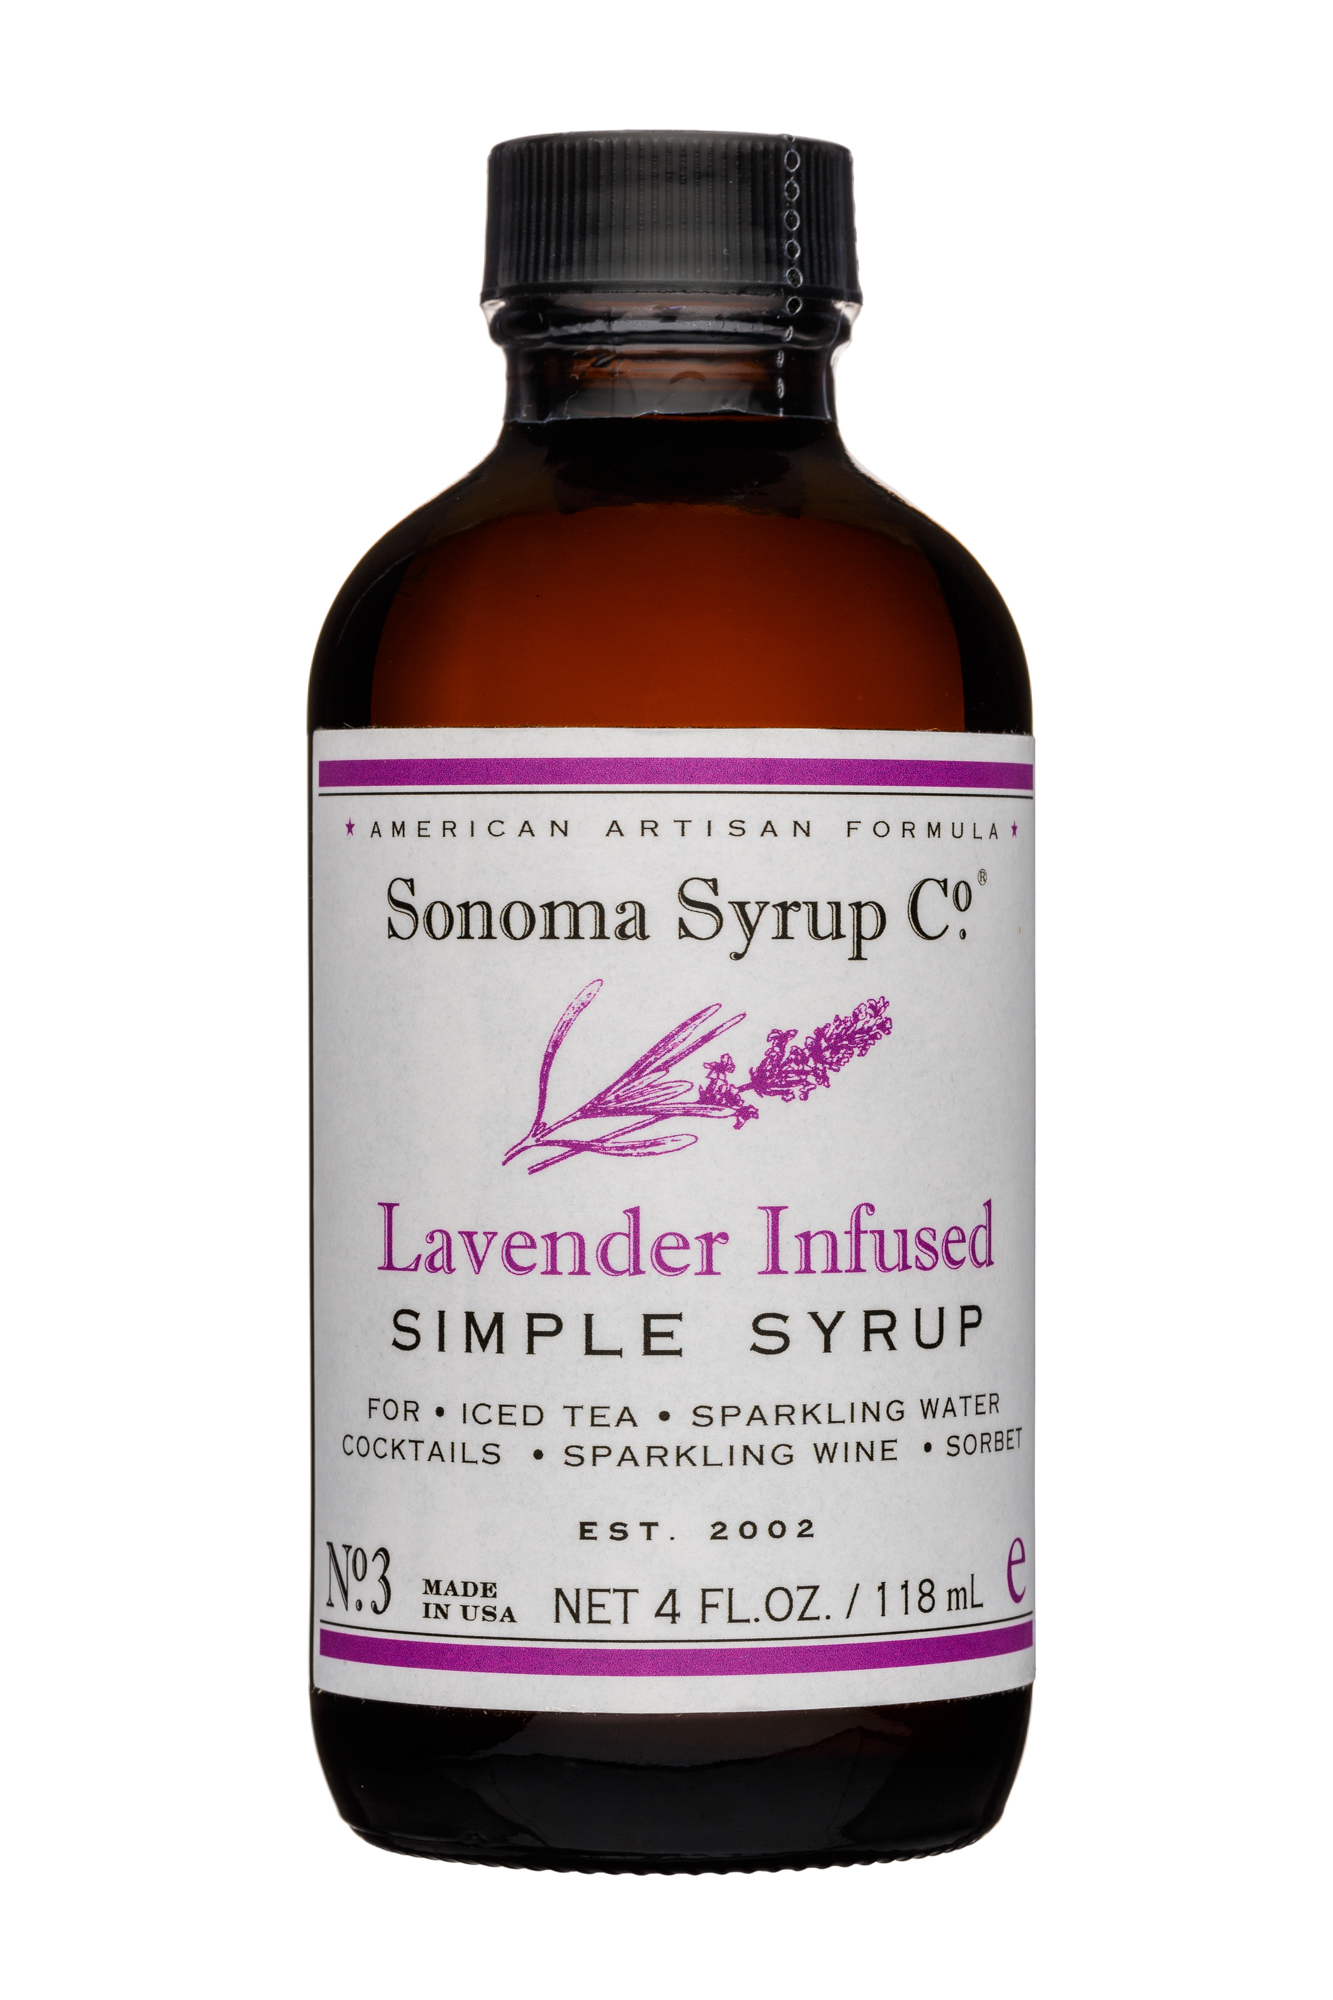 Sonoma Syrup Co.: SonomaSyrupCo-4oz-SimpleSyrup-LavenderInfused-Front